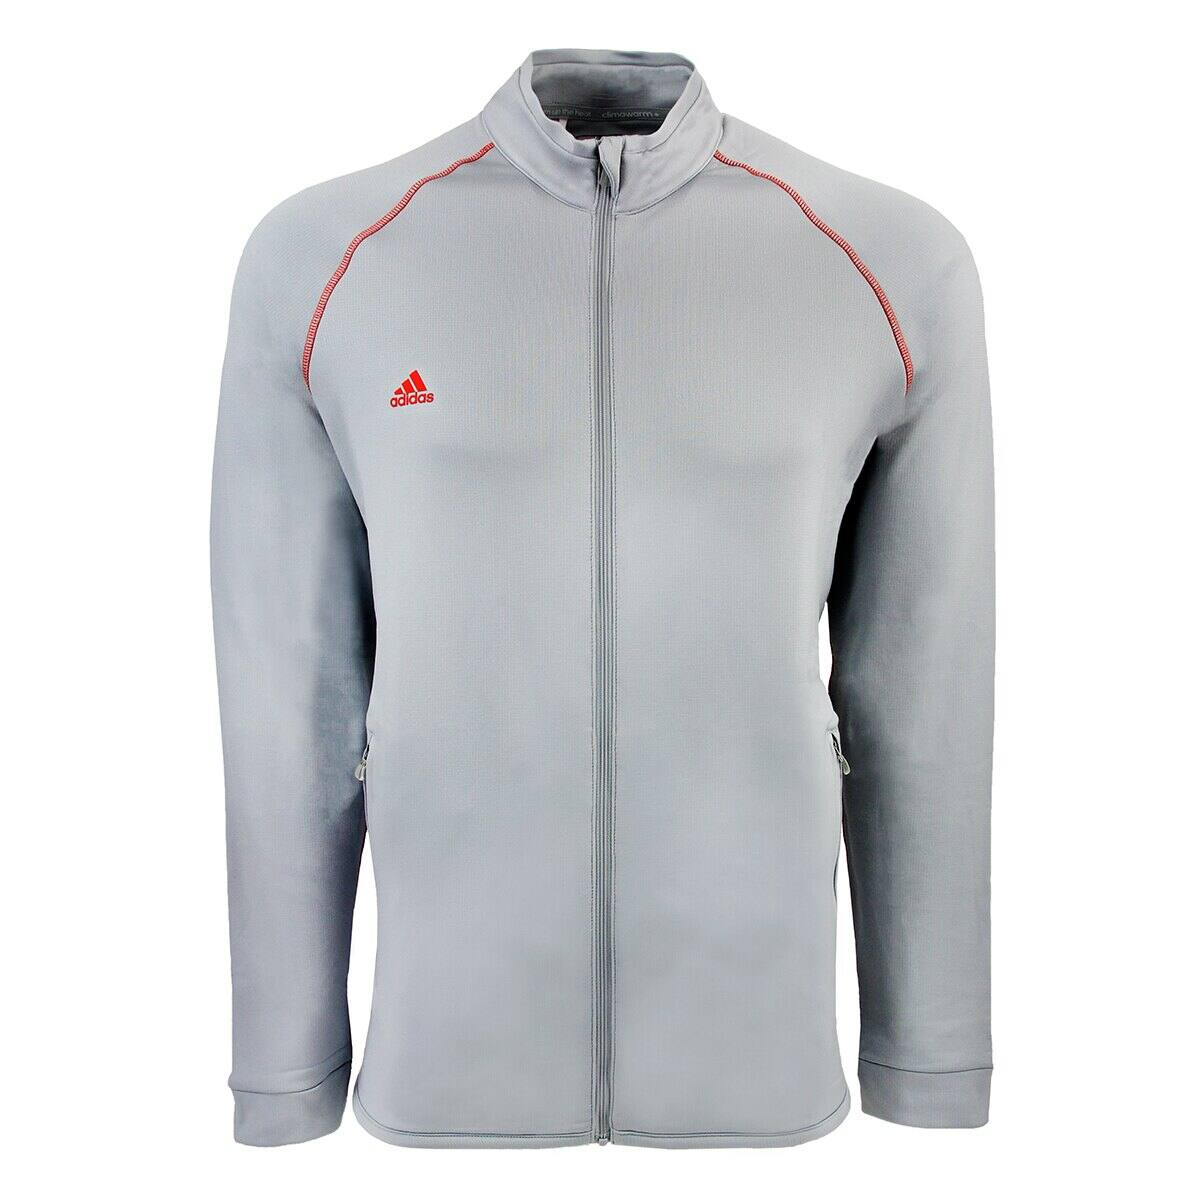 9f3602df3343f Adidas Men's ClimaWarm Full Zip Jacket $22.39 AC + $2.42 back in ...